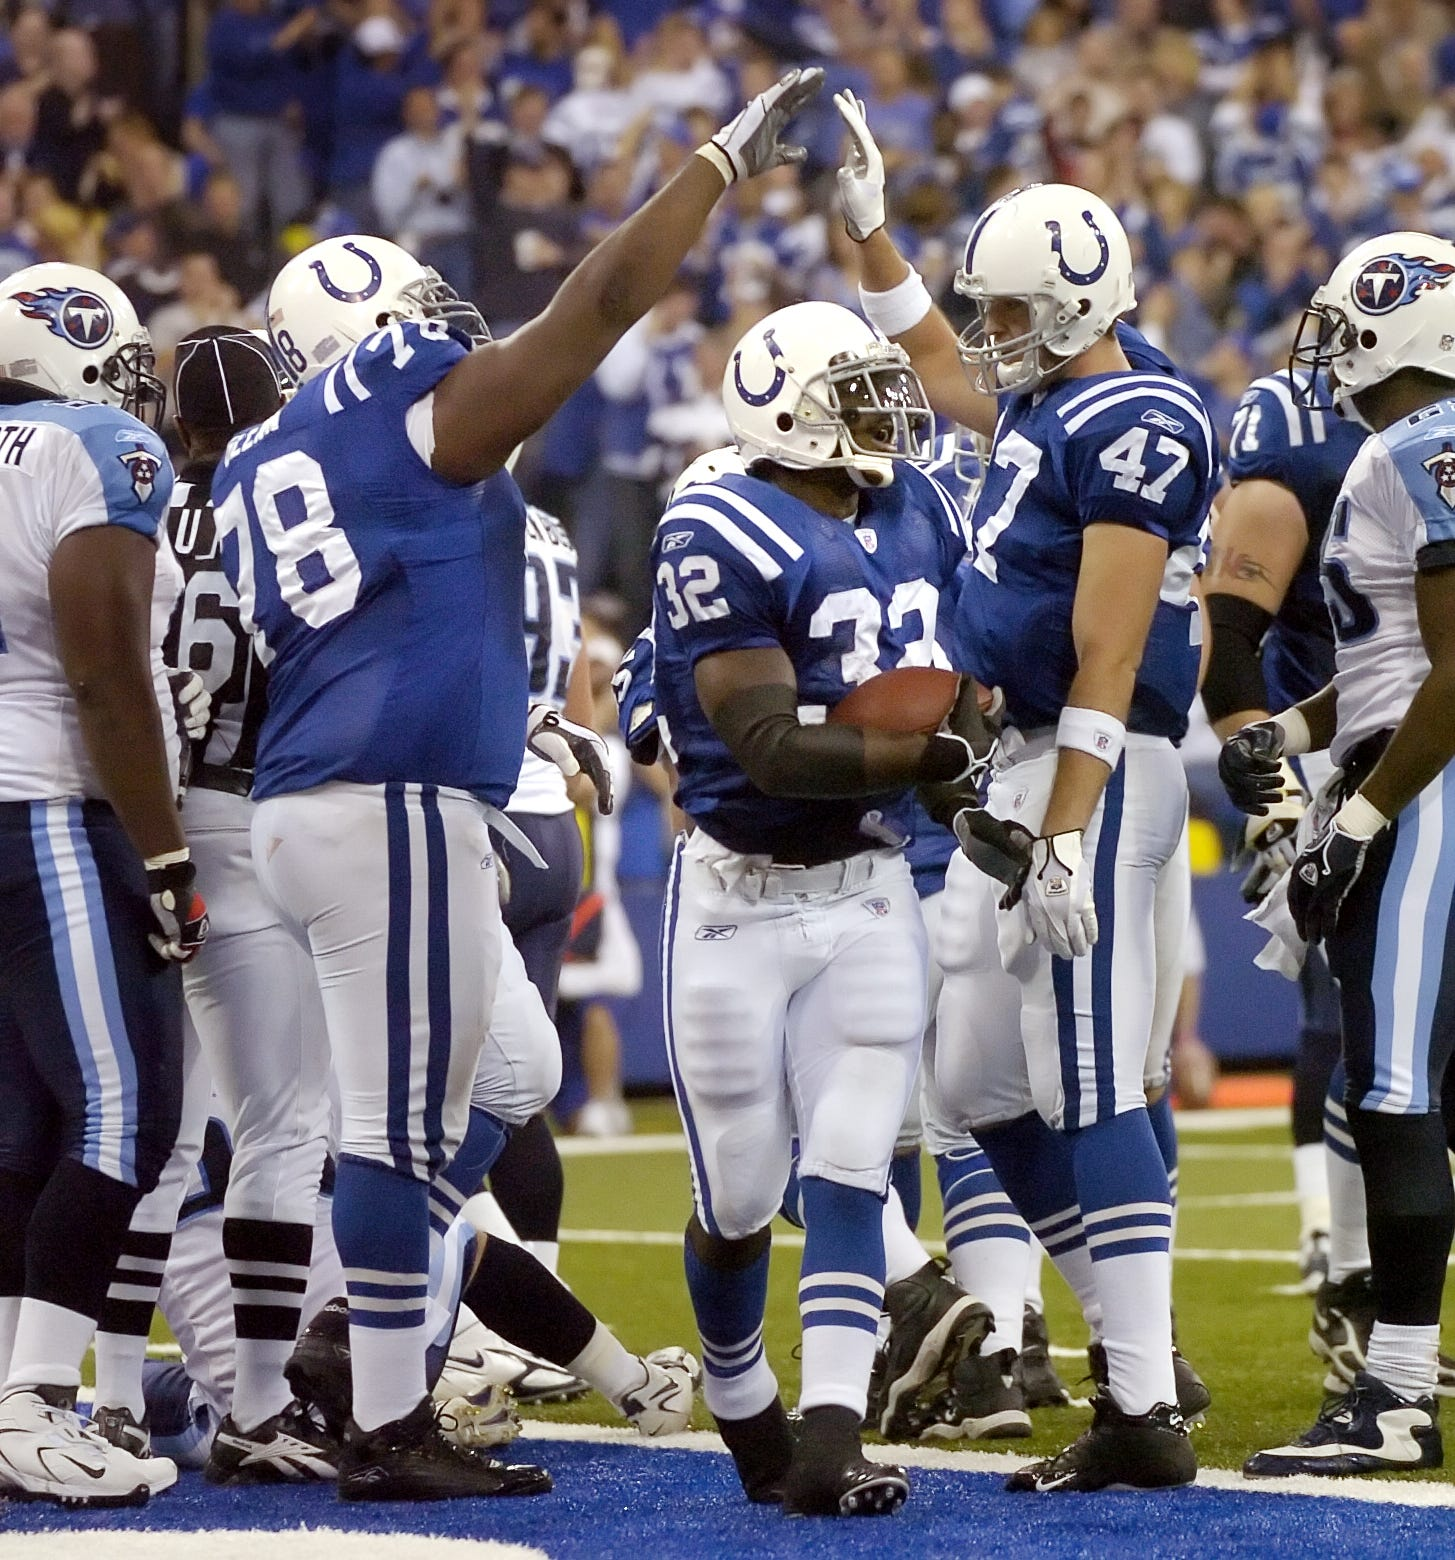 f58193b5d9c http://www.indystar.com/picture-gallery/sports/nfl/colts/2017/10/05/colts  ...